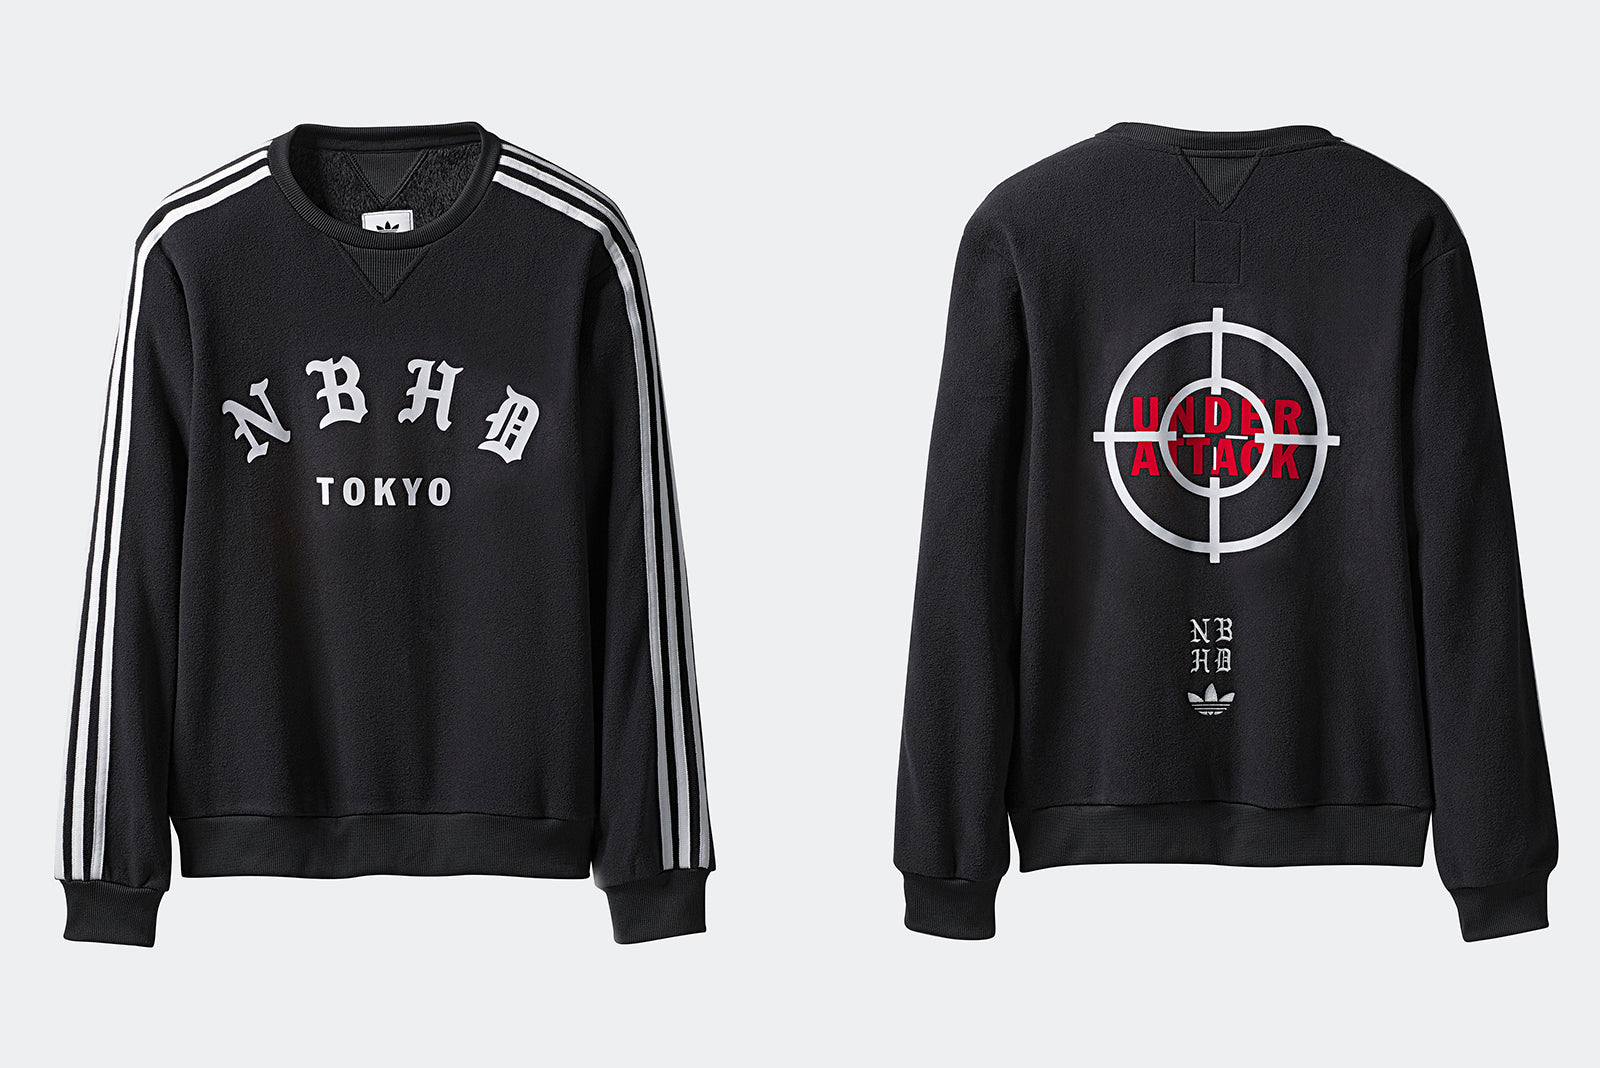 ffe164159cc2 adidas Crewneck Sweatshirt x Neighborhood DH2037 Black Price  £109.00.  Launch  September 1st